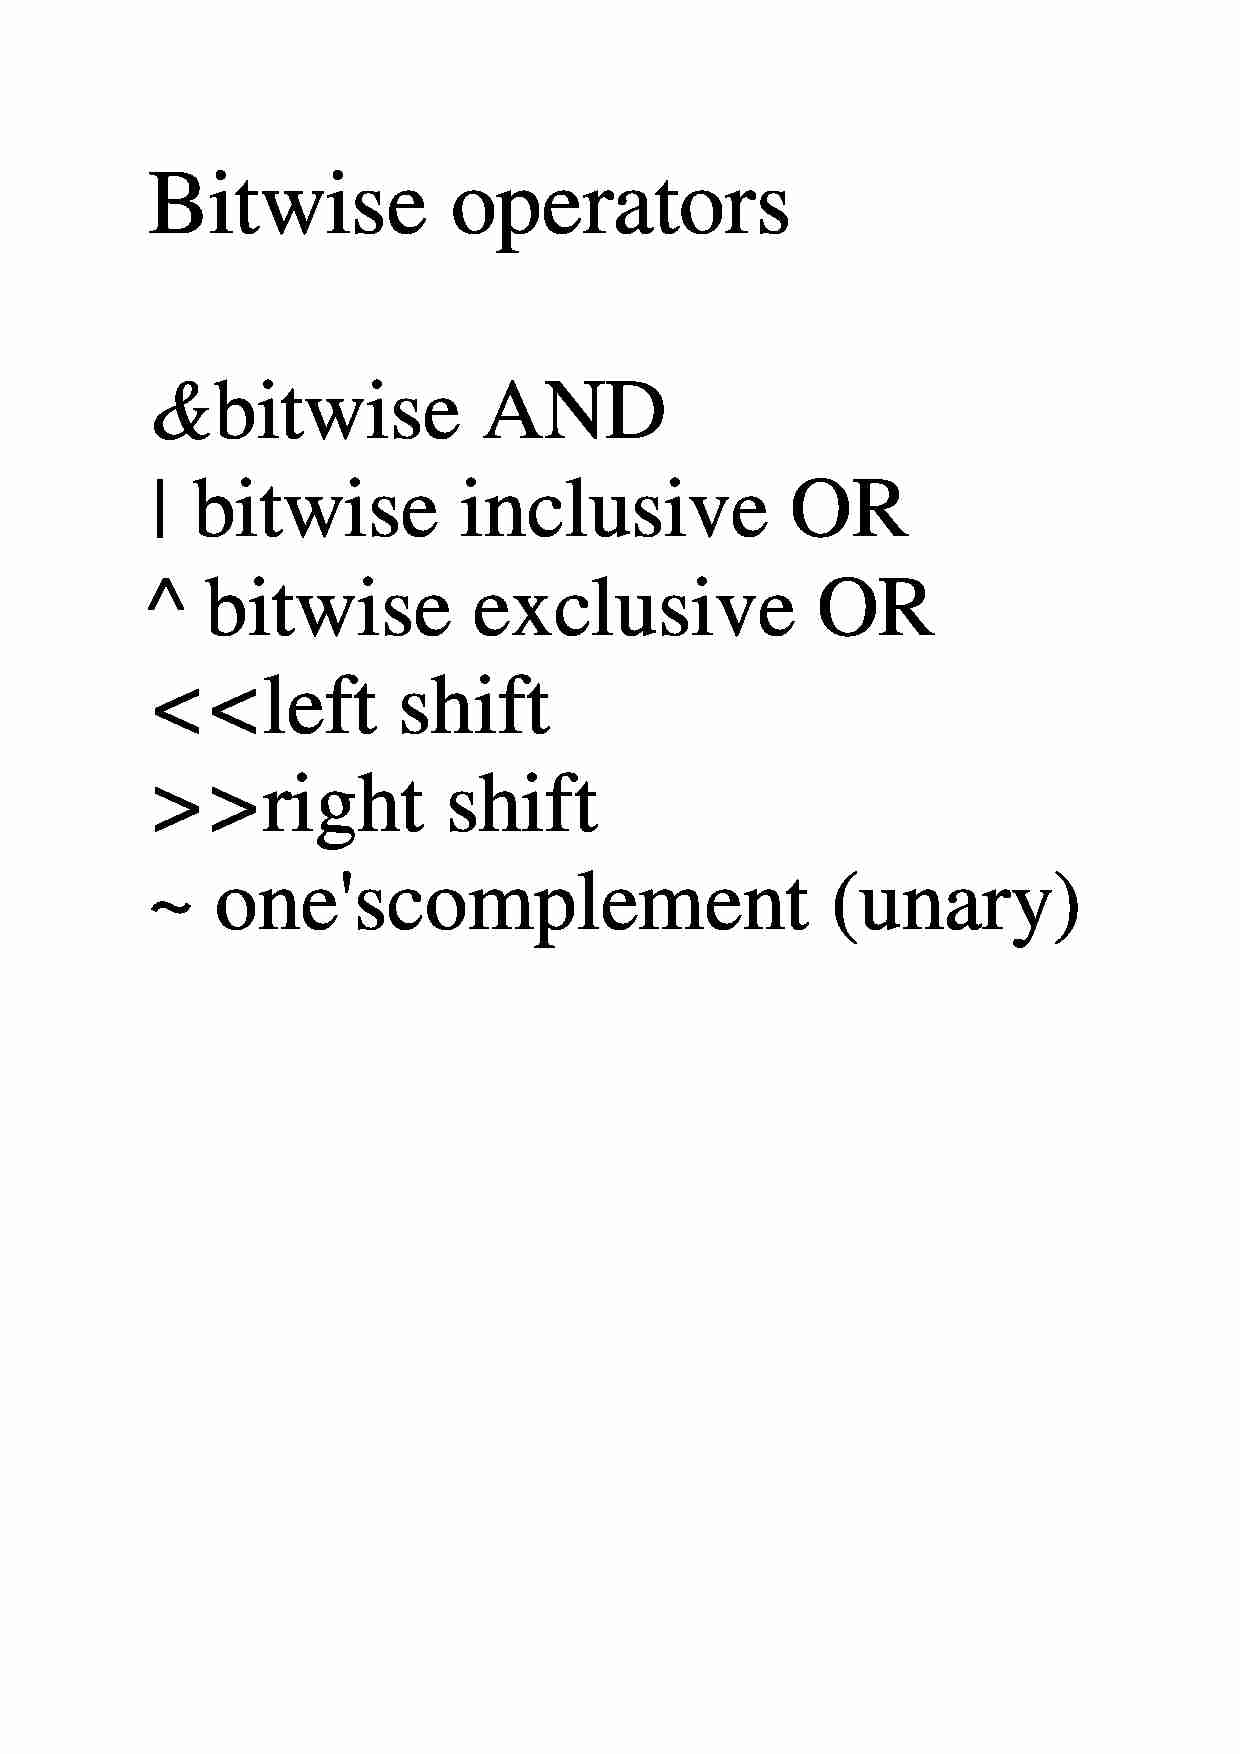 Bitwise operators & bitwise AND - examples - strona 1